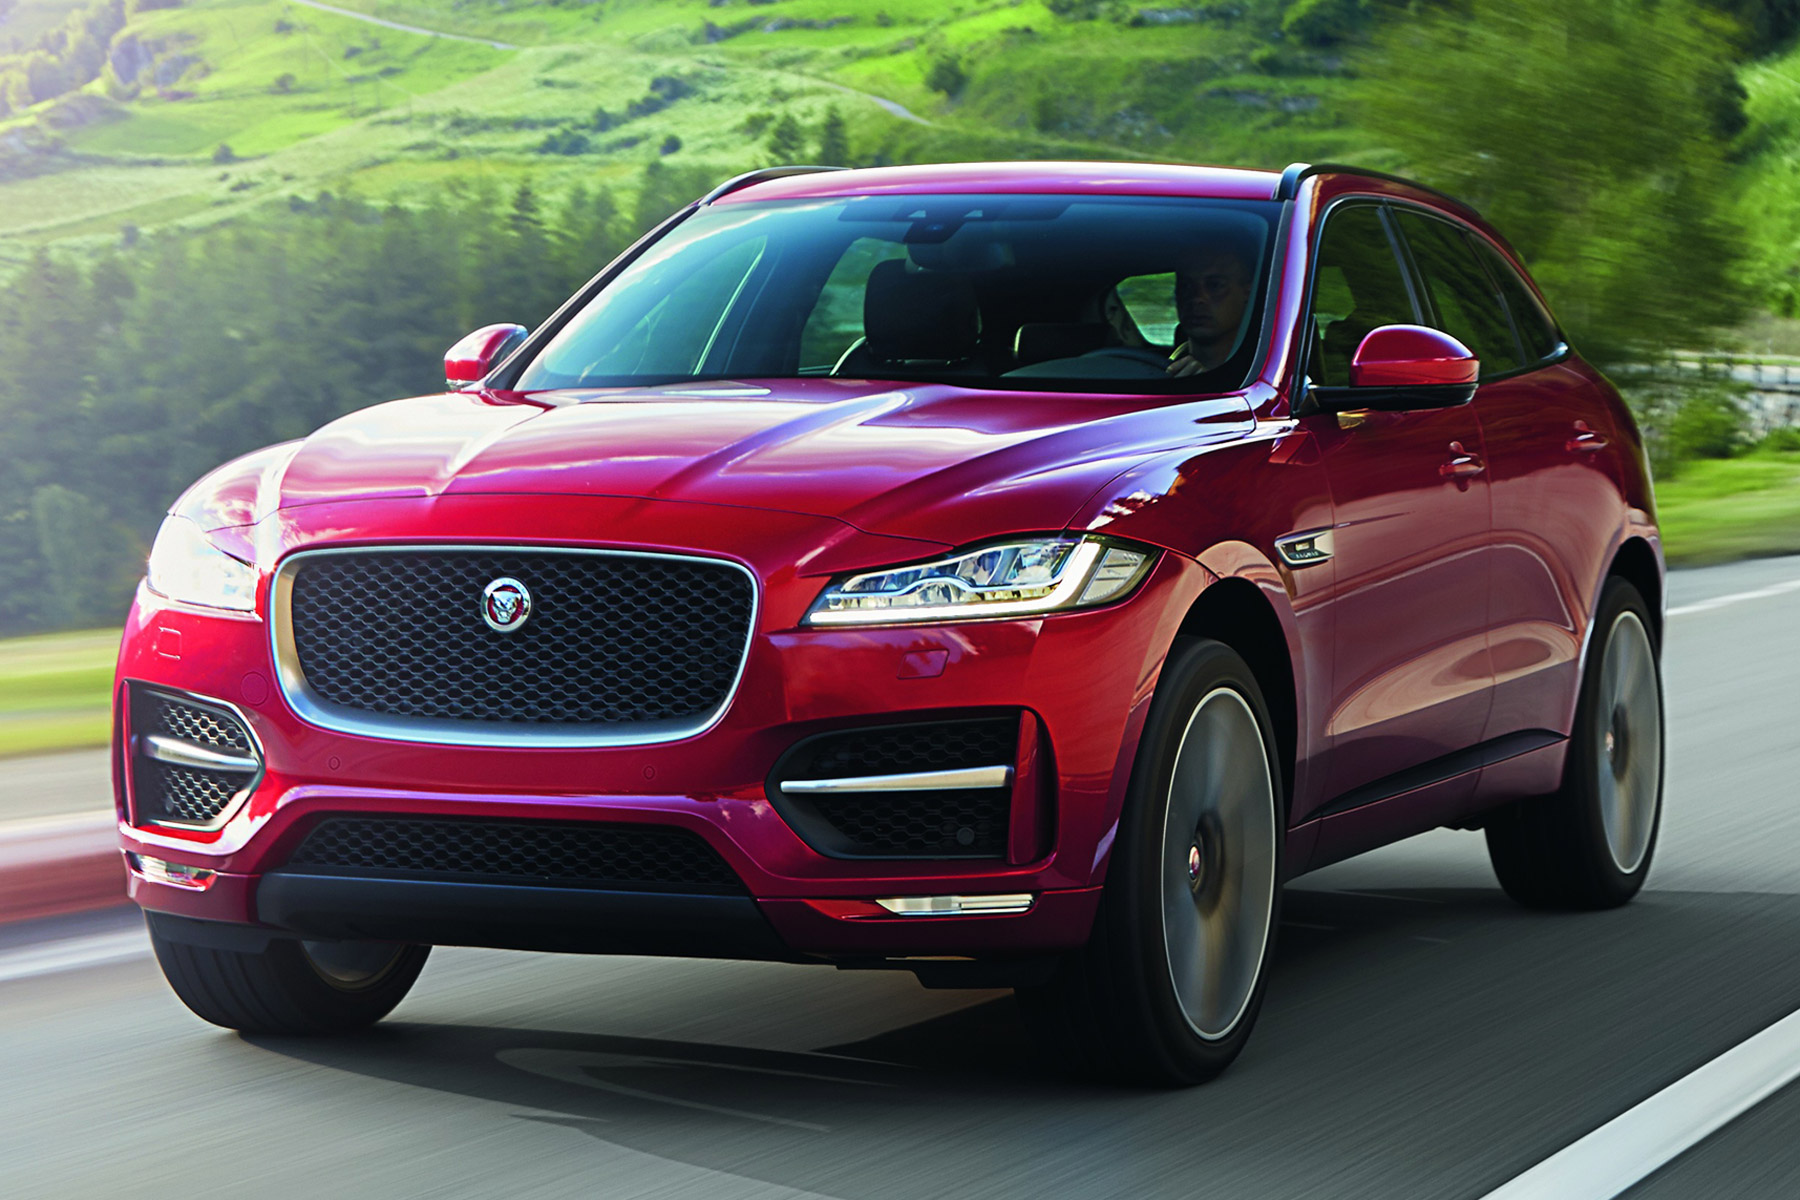 Huge premiums offered for Jaguar F-Pace